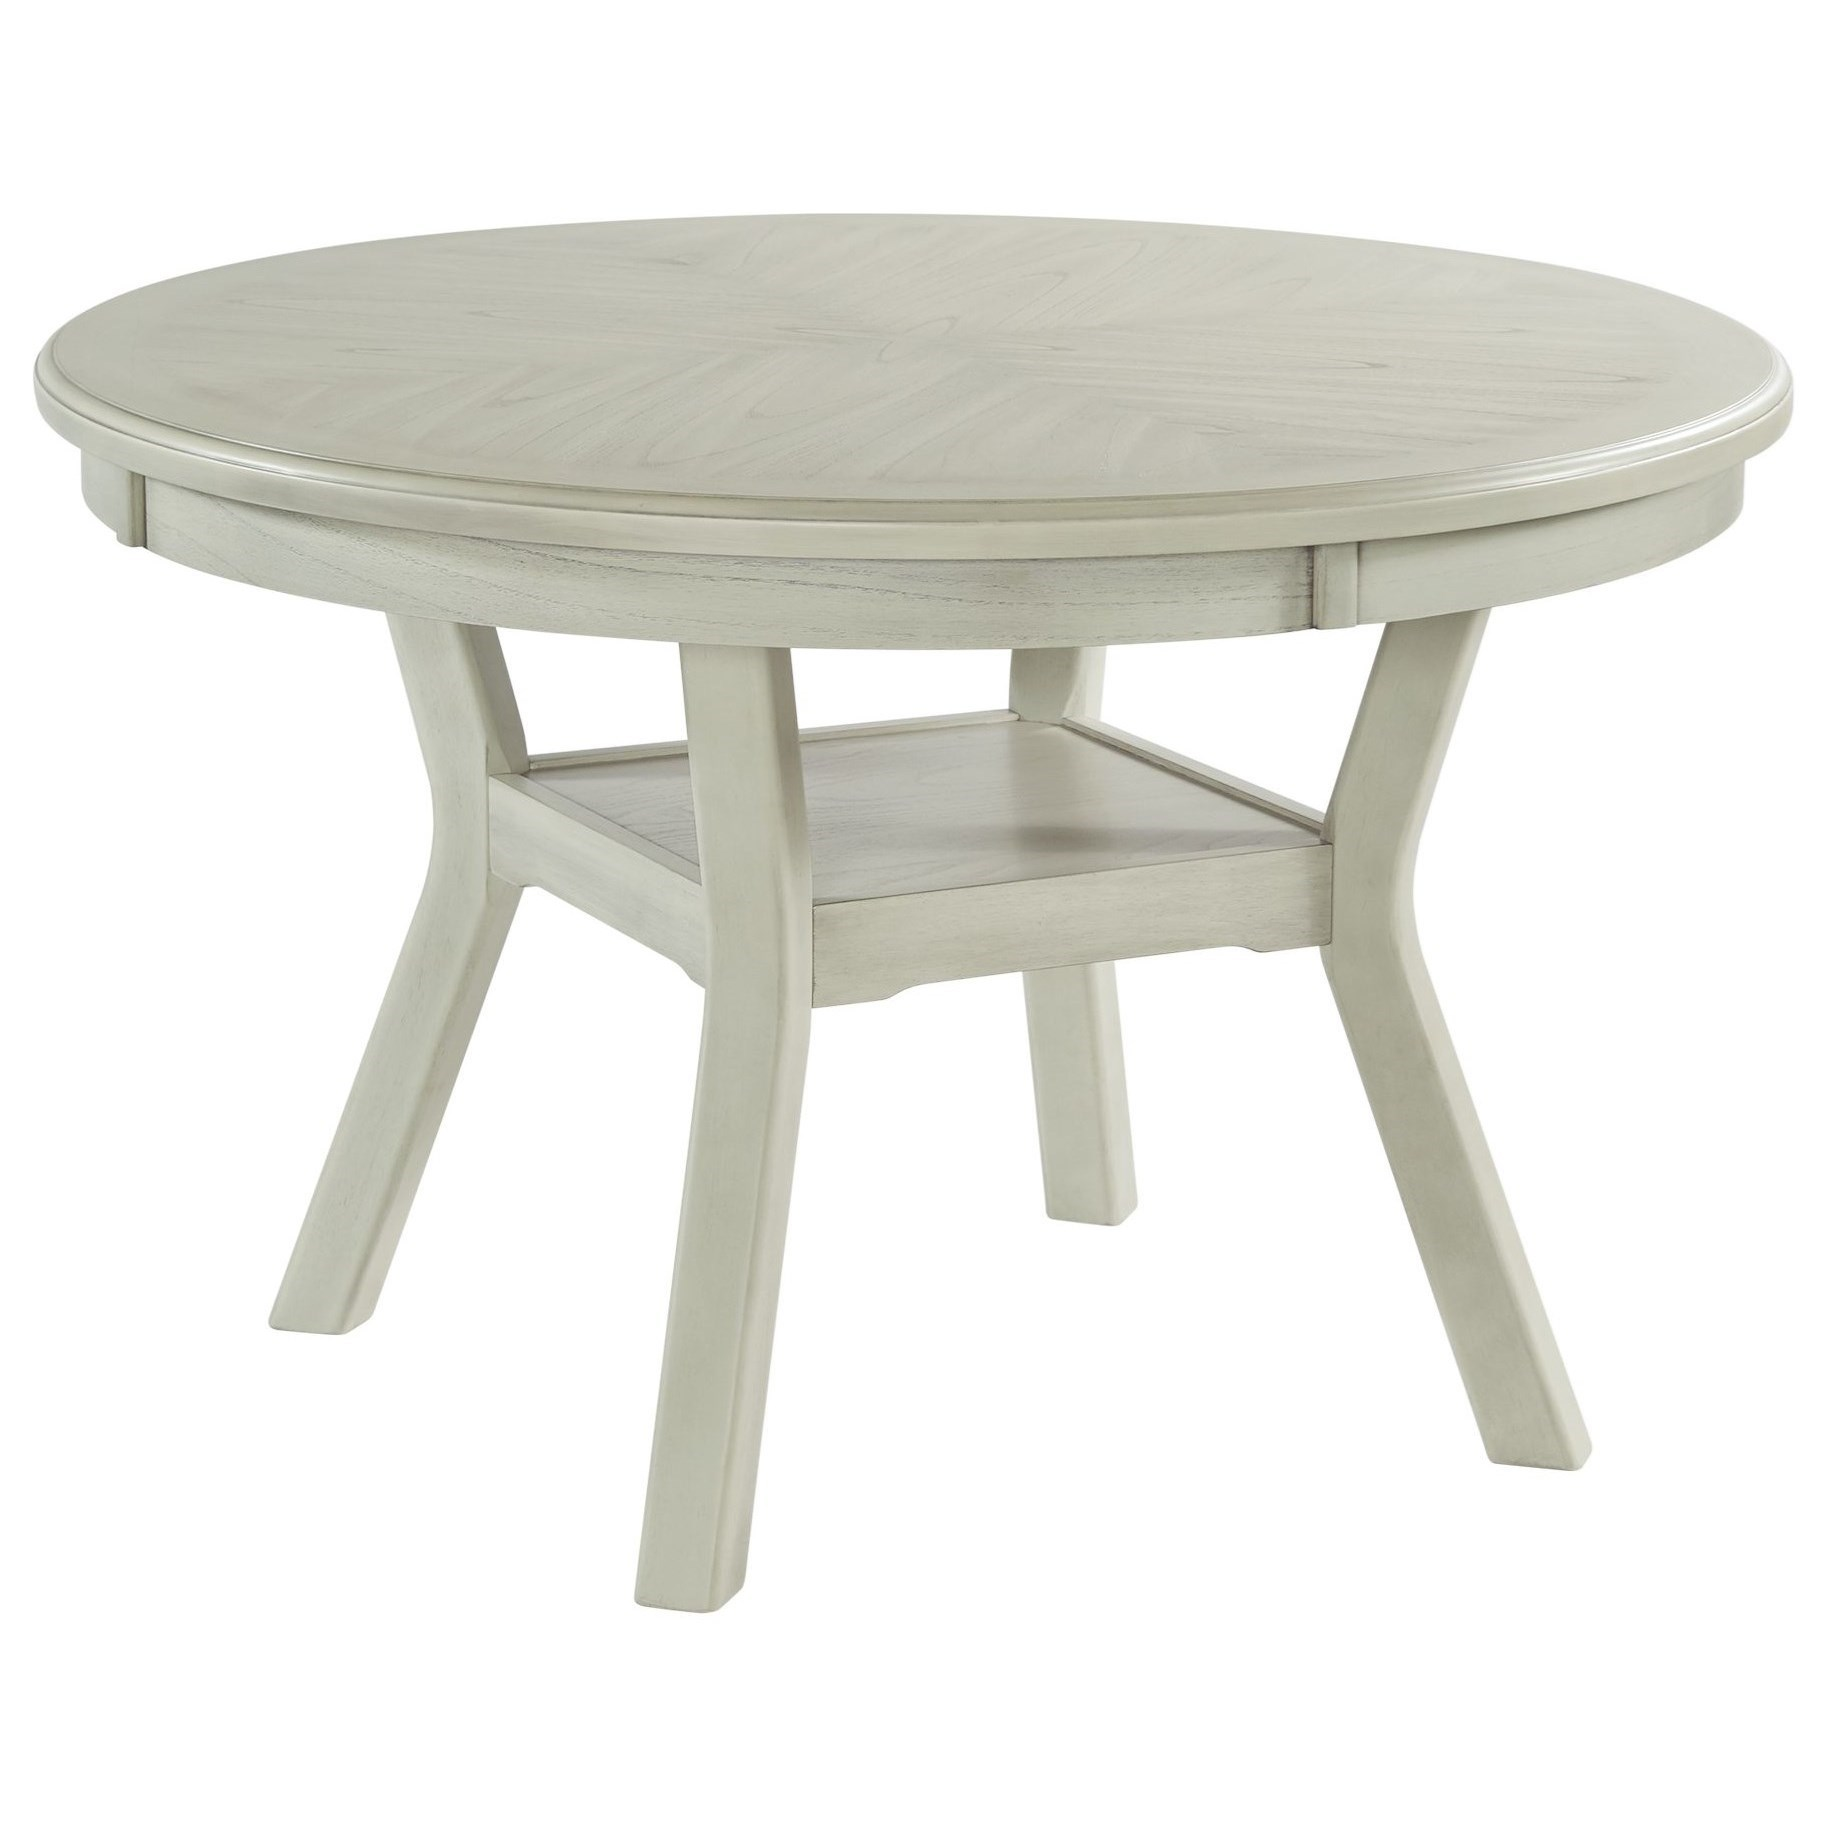 Elements International Amherst Transitional Round Standard Height Dining Table Lindy S Furniture Company Dining Tables